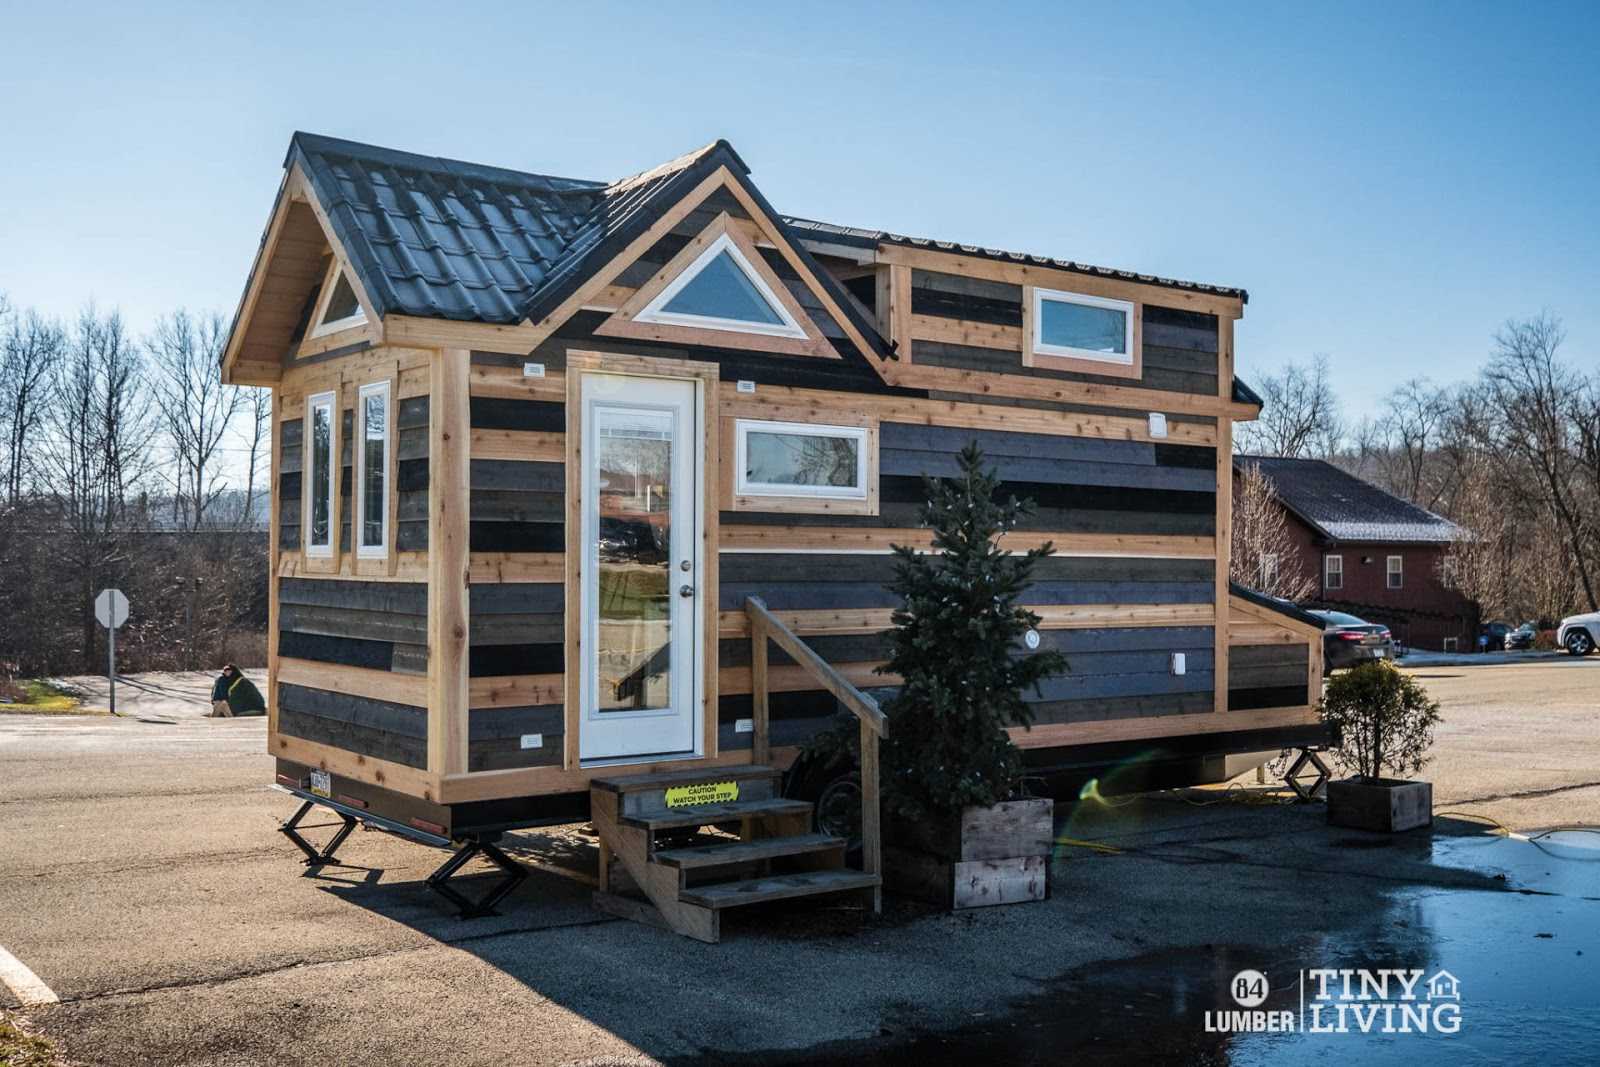 countryside 84 lumber 1 the countryside by 84 lumber (203 sq ft) tiny house town,84 Lumber Tiny House Plans